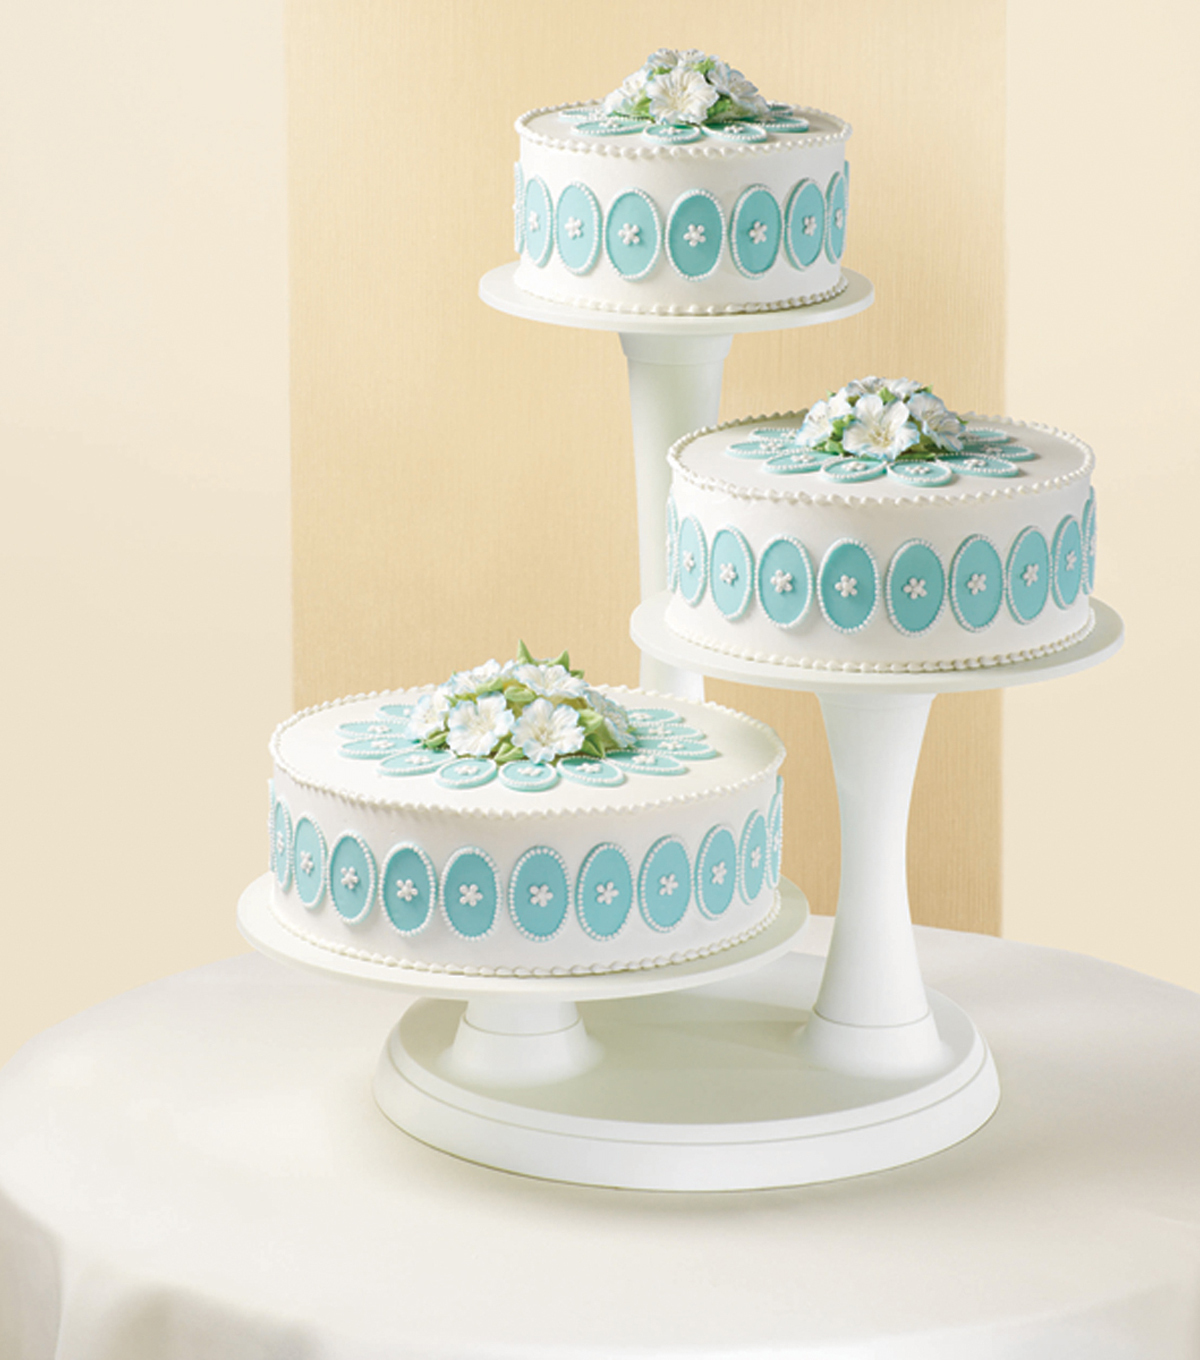 Wilton 3 Tier Pillar Cake Stand-Off-White & Wilton 3 Tier Pillar Cake Stand - Off-White | JOANN